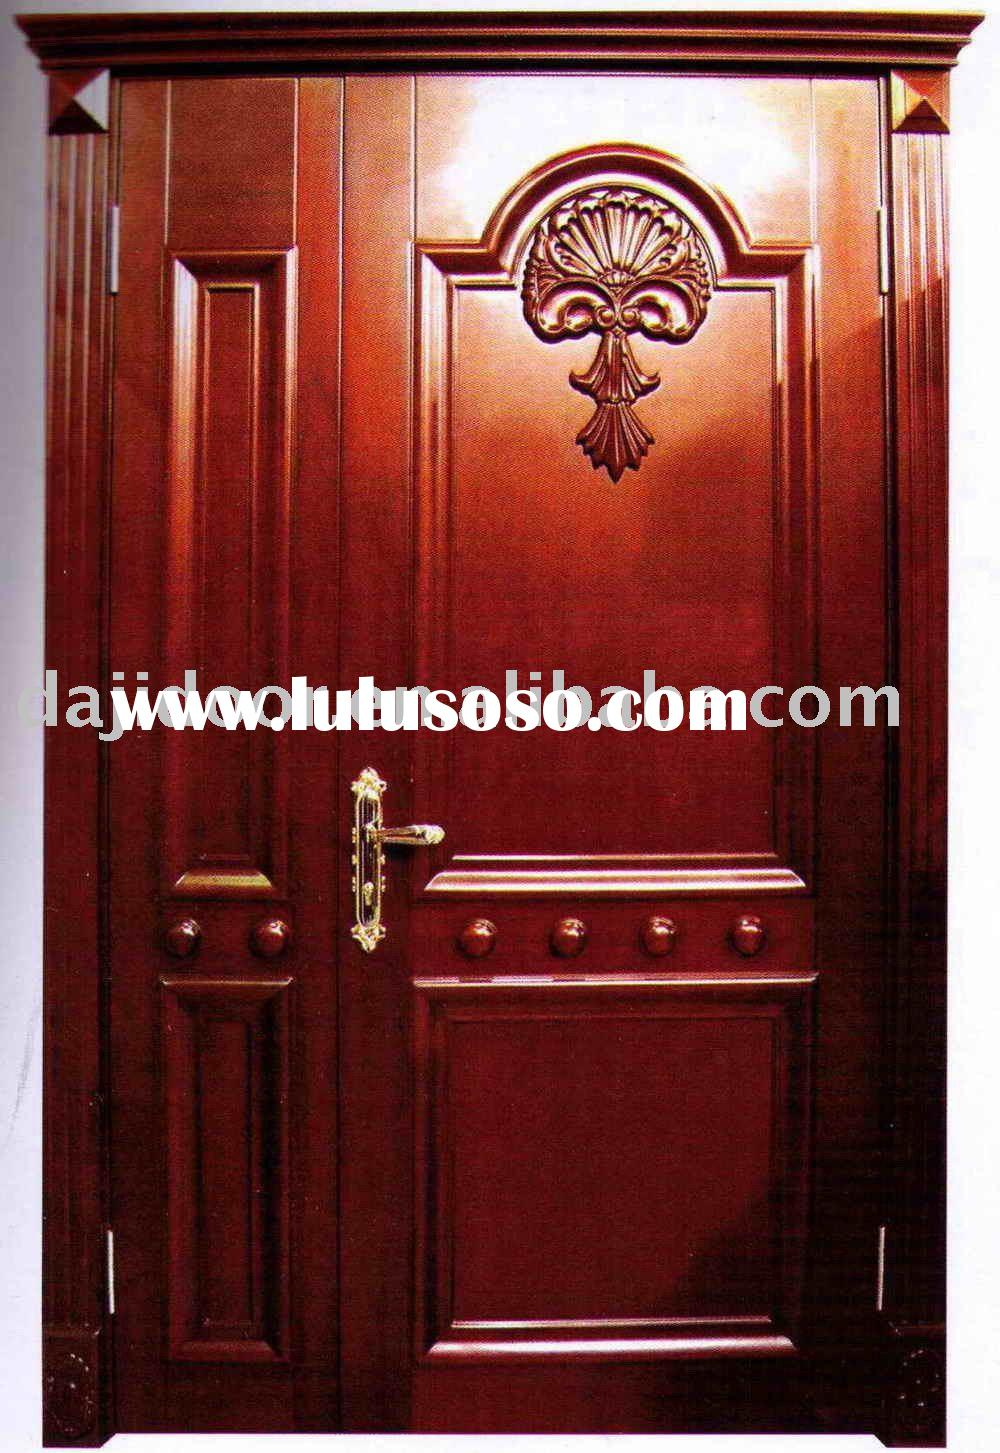 Home main door designs home ideas designs for Main door designs 2014